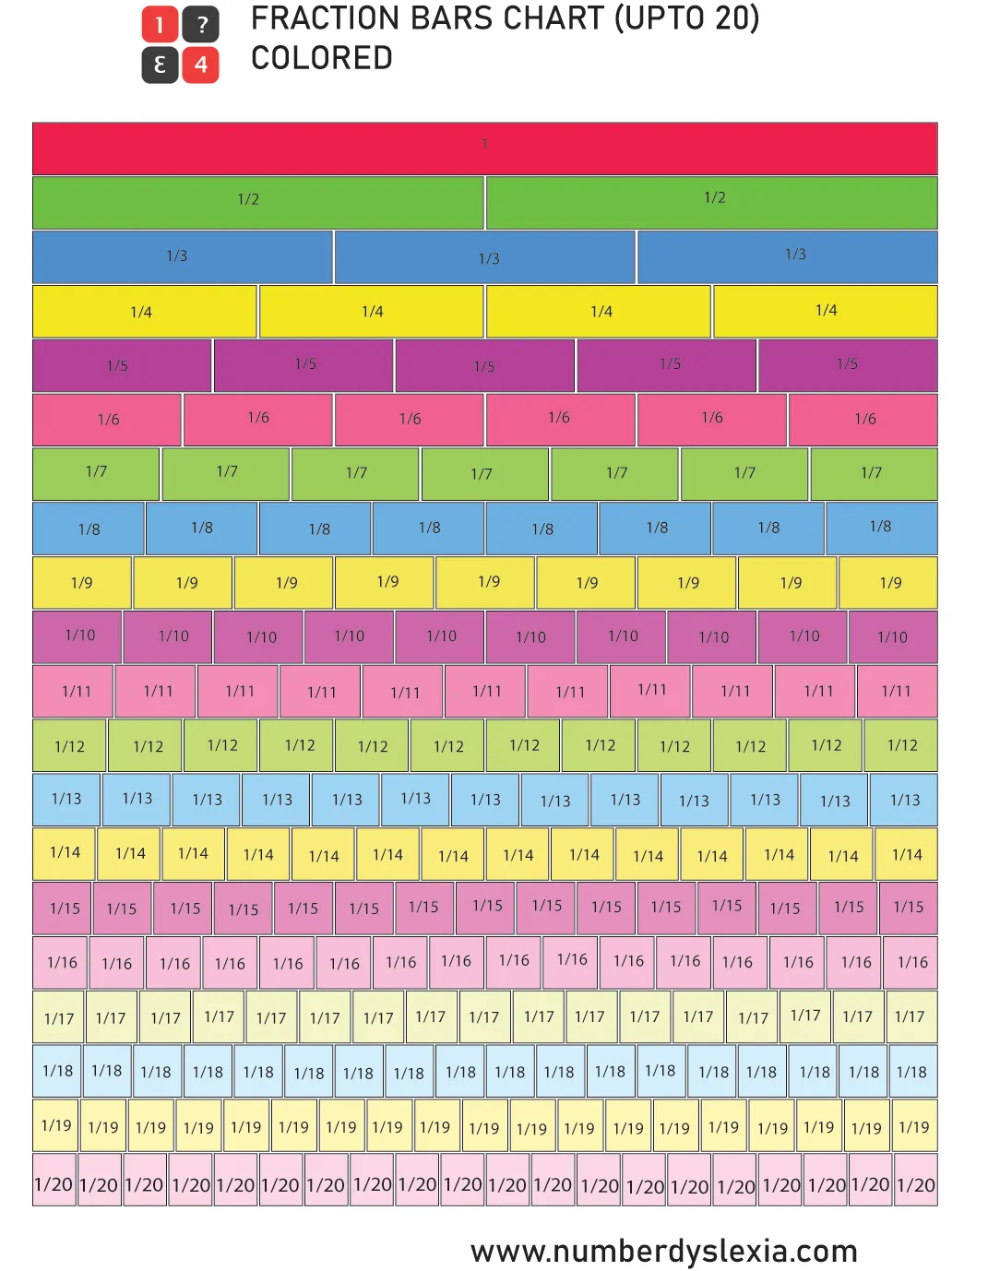 Free Printable Fraction Bars Strips Chart Up To 20 Number Dyslexia Fraction Chart Math Fractions Fractions [ 1271 x 1000 Pixel ]